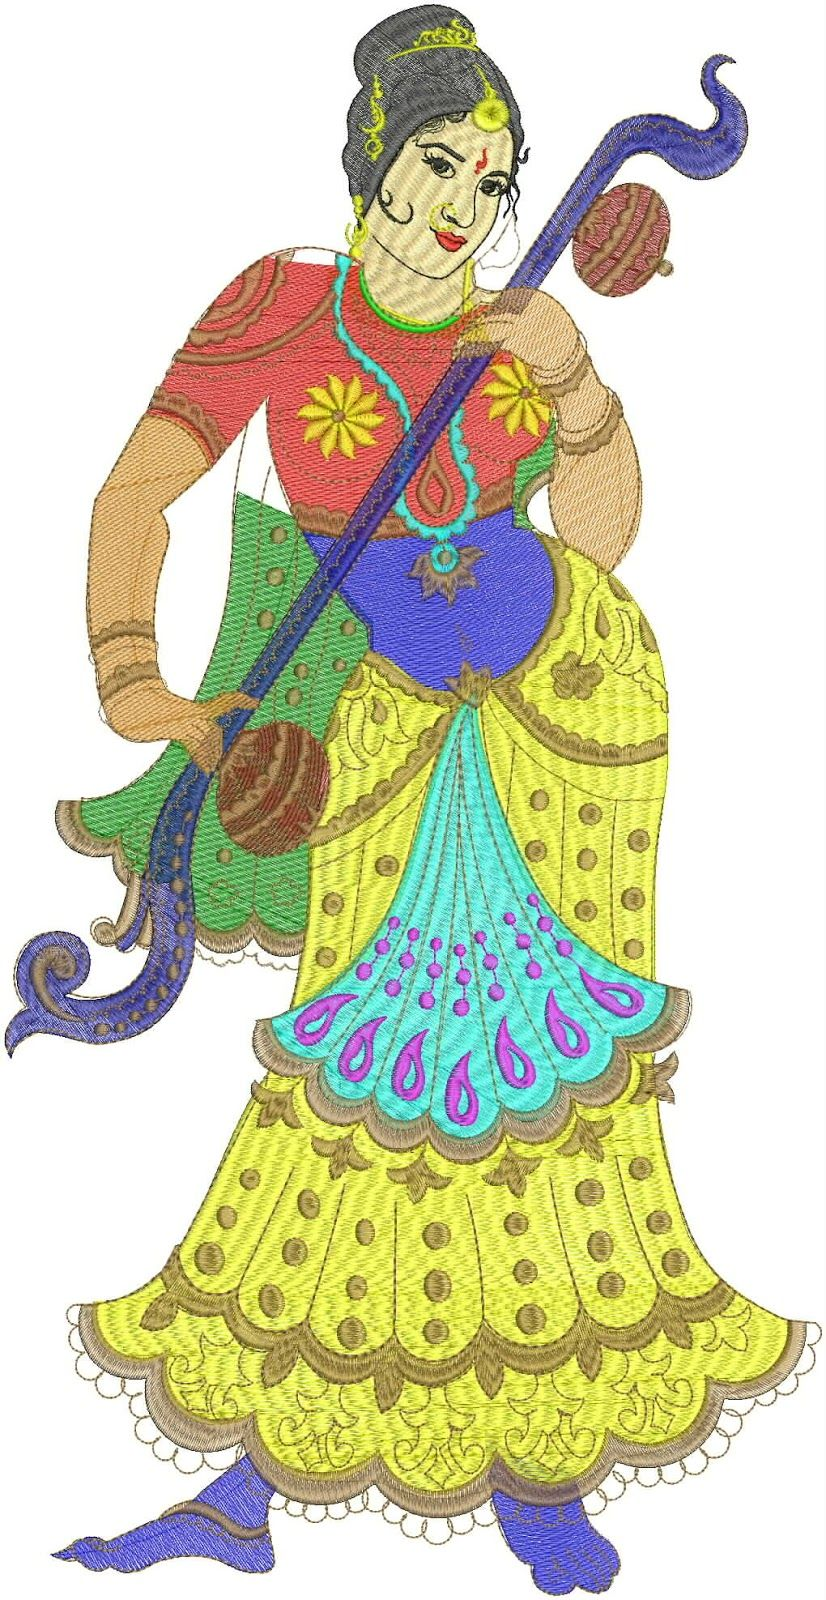 The Embroidery Designs Is The Special Design Of Live Figure Of